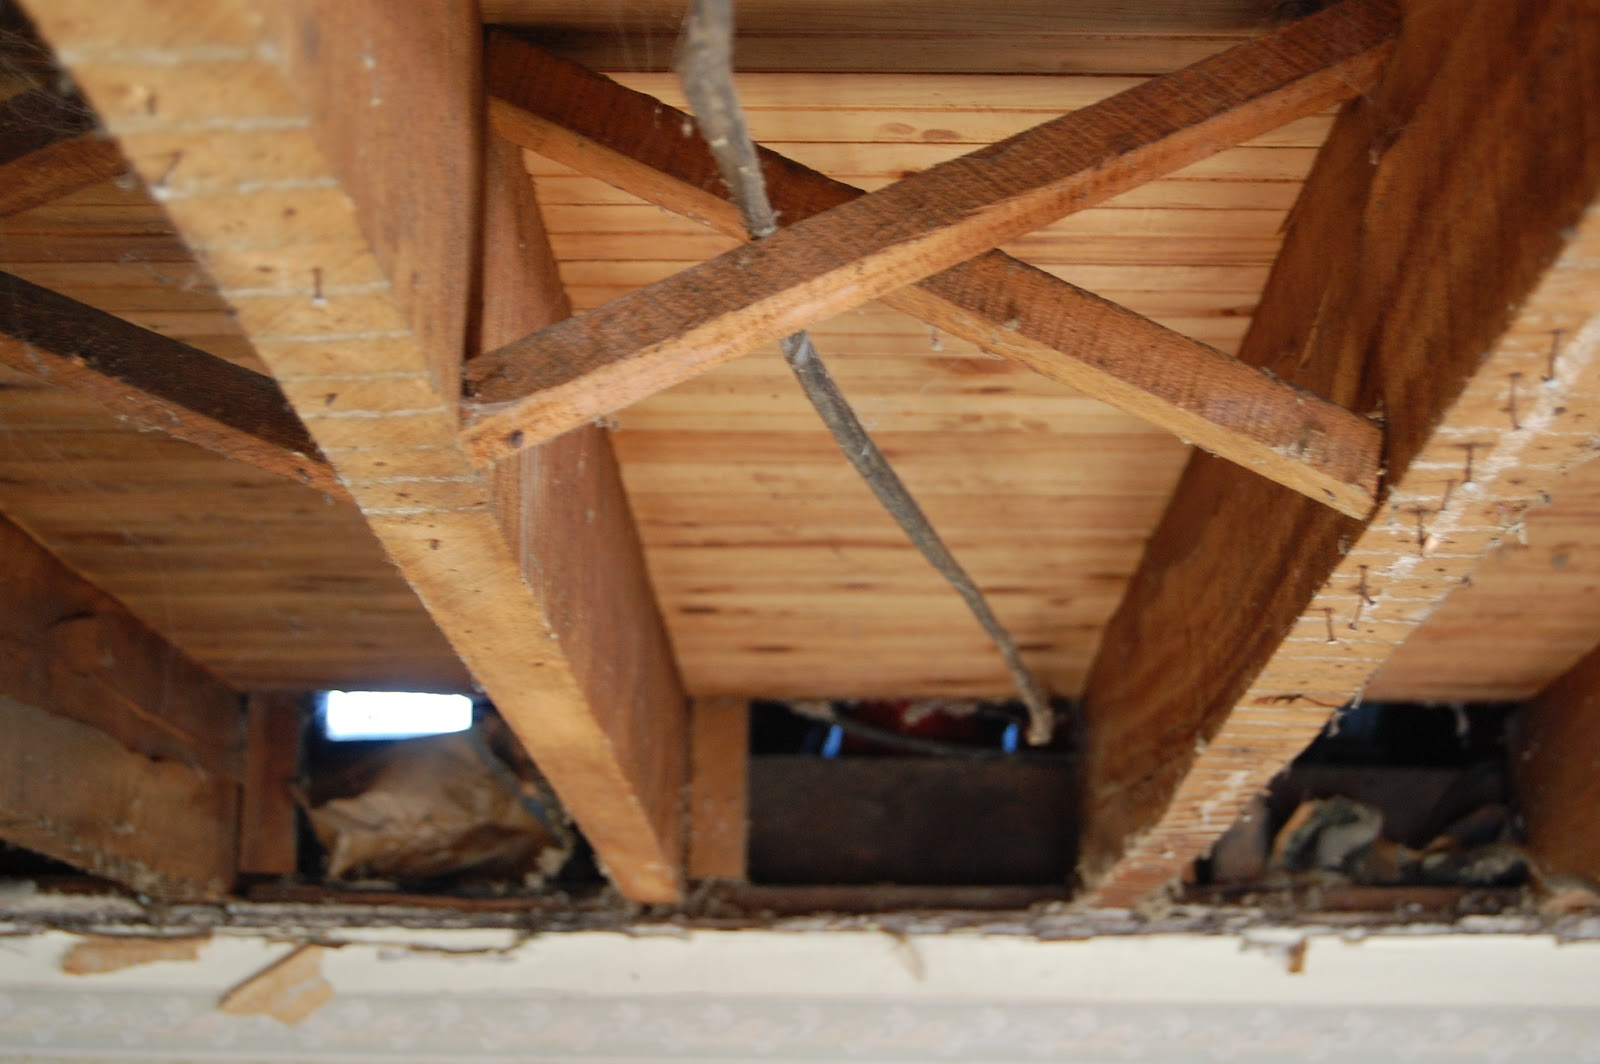 THE.BURK.HAUS: living room exposed floor joists mayhem